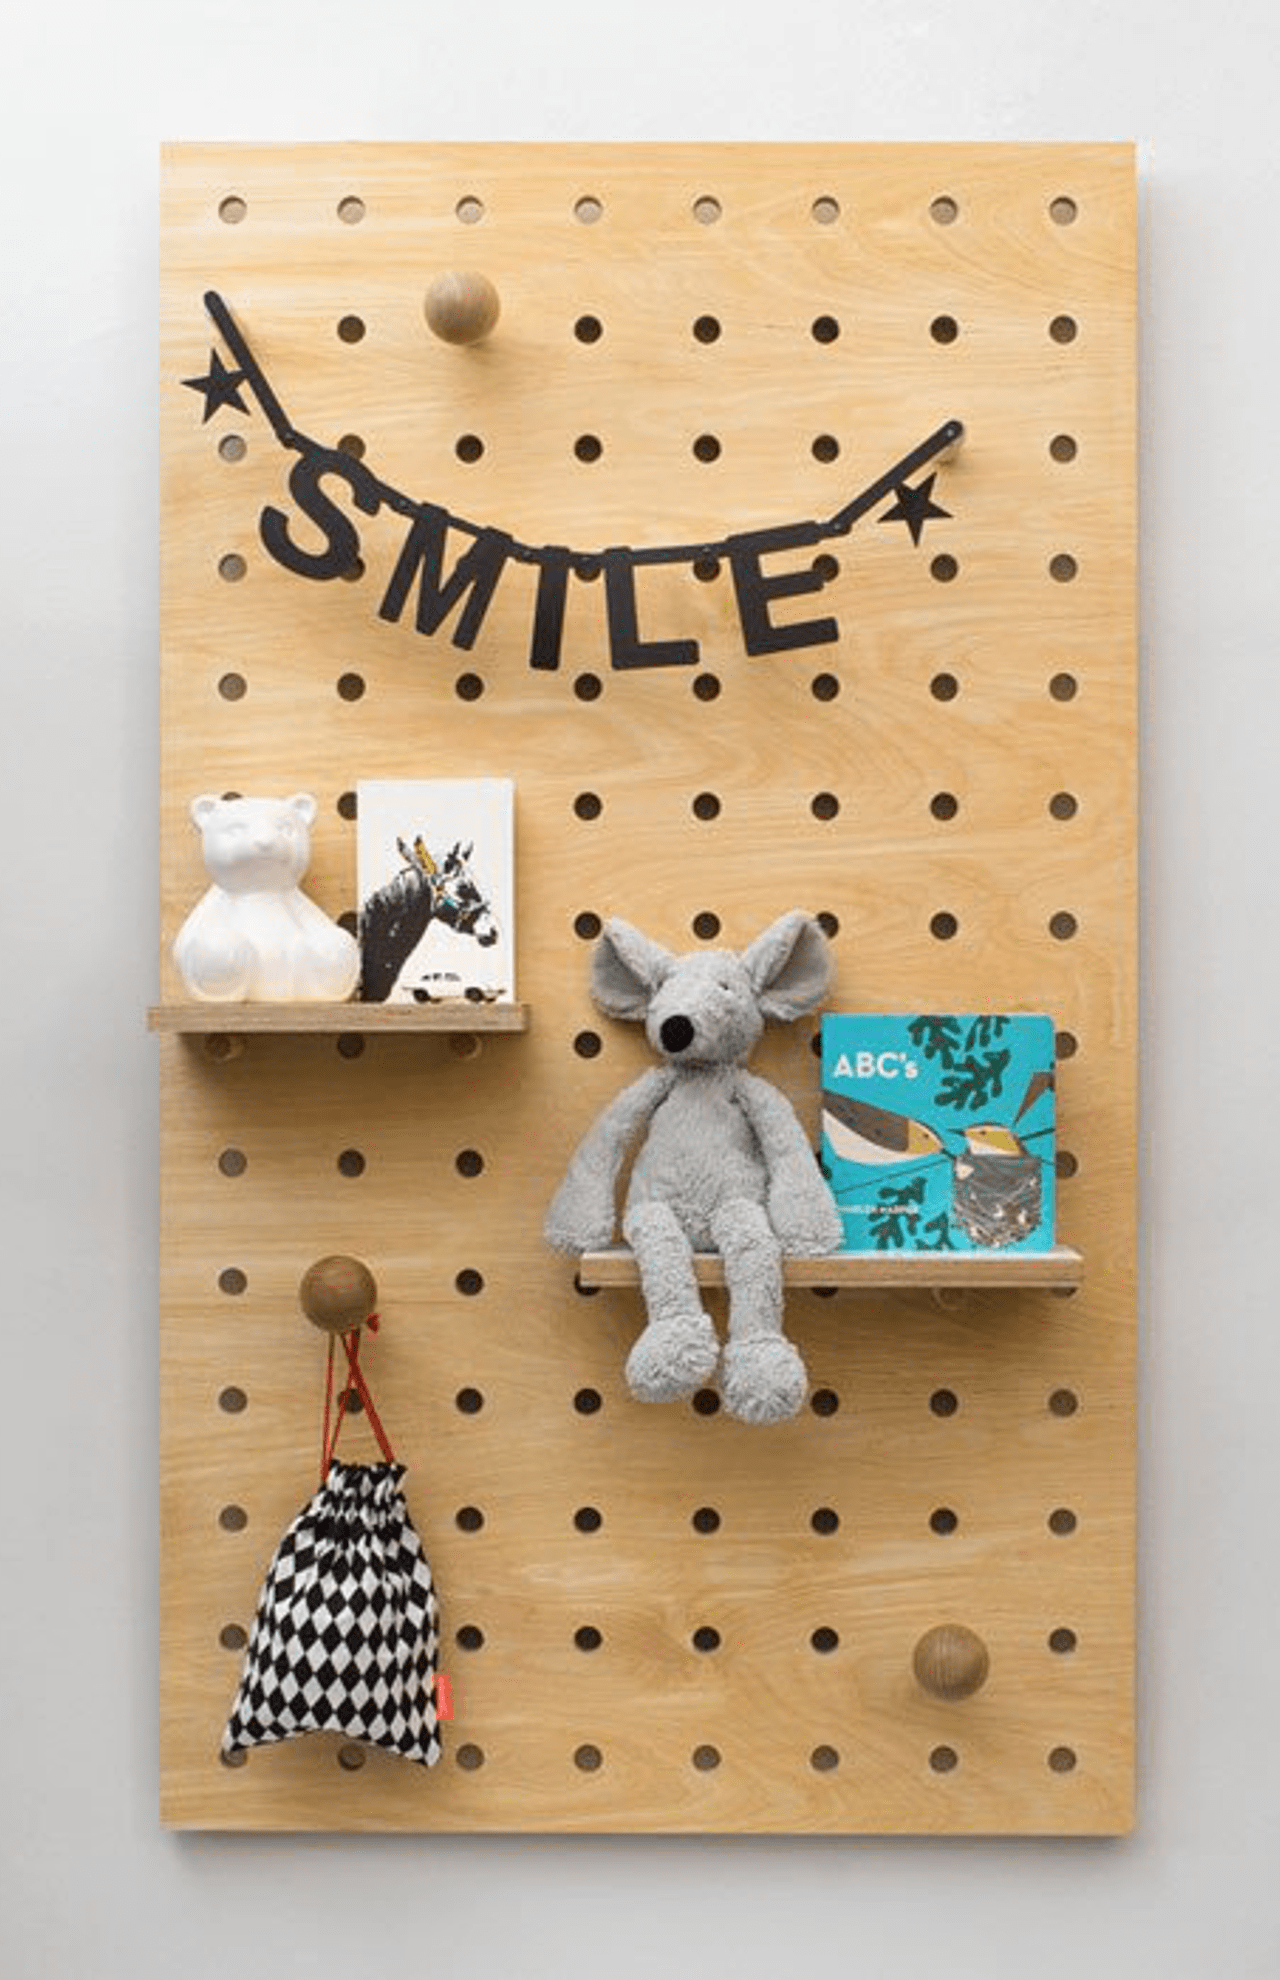 Pegboard with Shelves and Pegs - Birch Plywood - The Modern Nursery